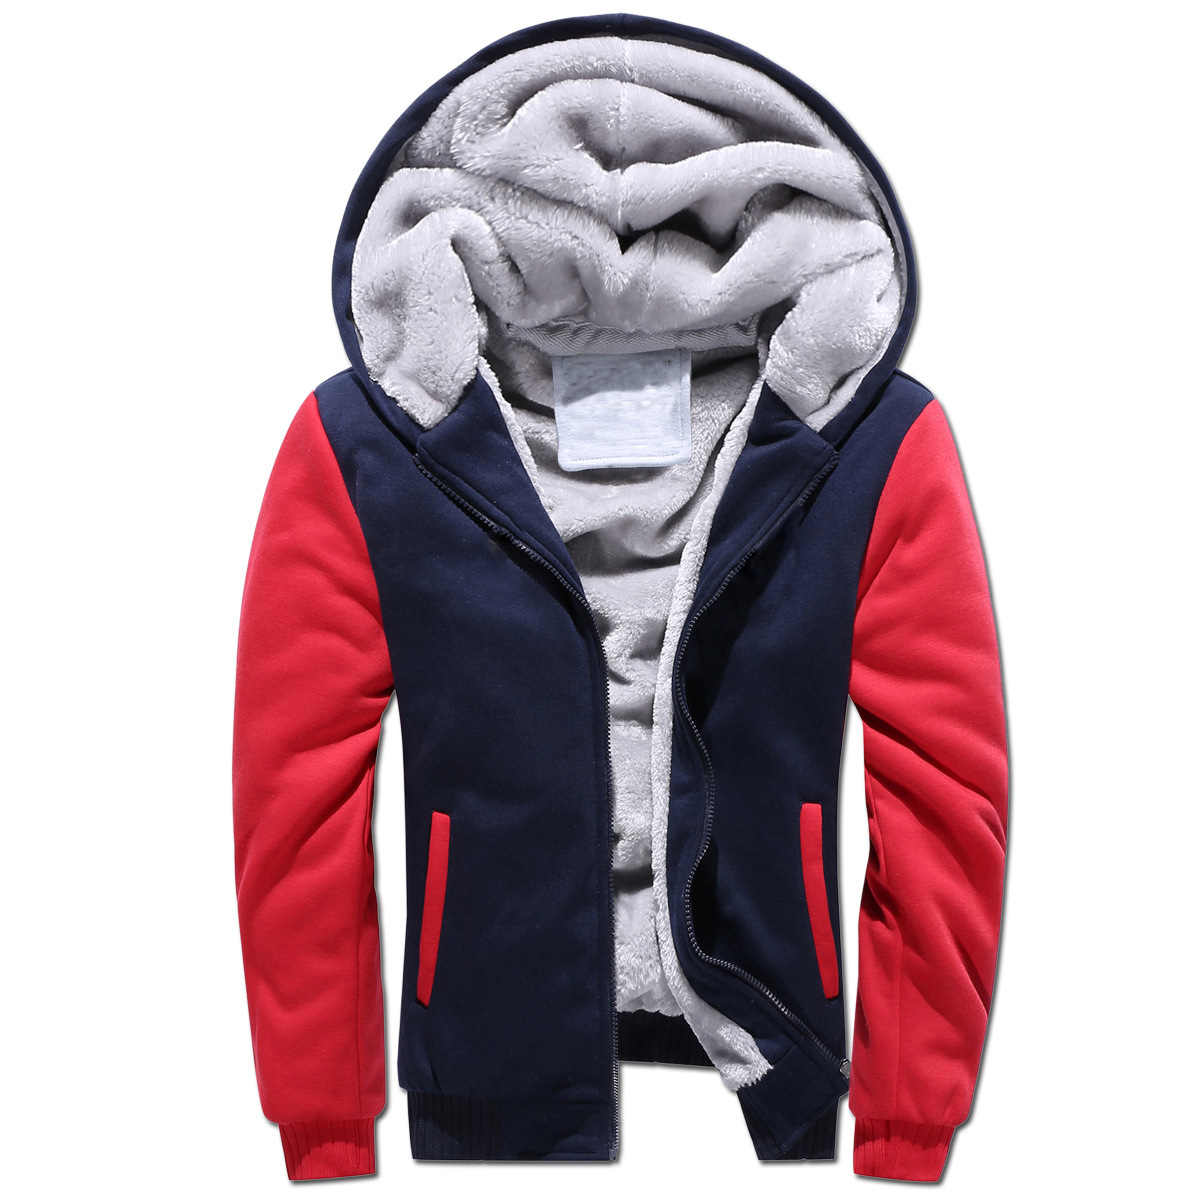 S 5XL 2019 Hot Sell Fashion Winter Jacket Men New Brand Winter Thick Warm Fleece Zipper Coat Mens Parkas Male European Hoodies L